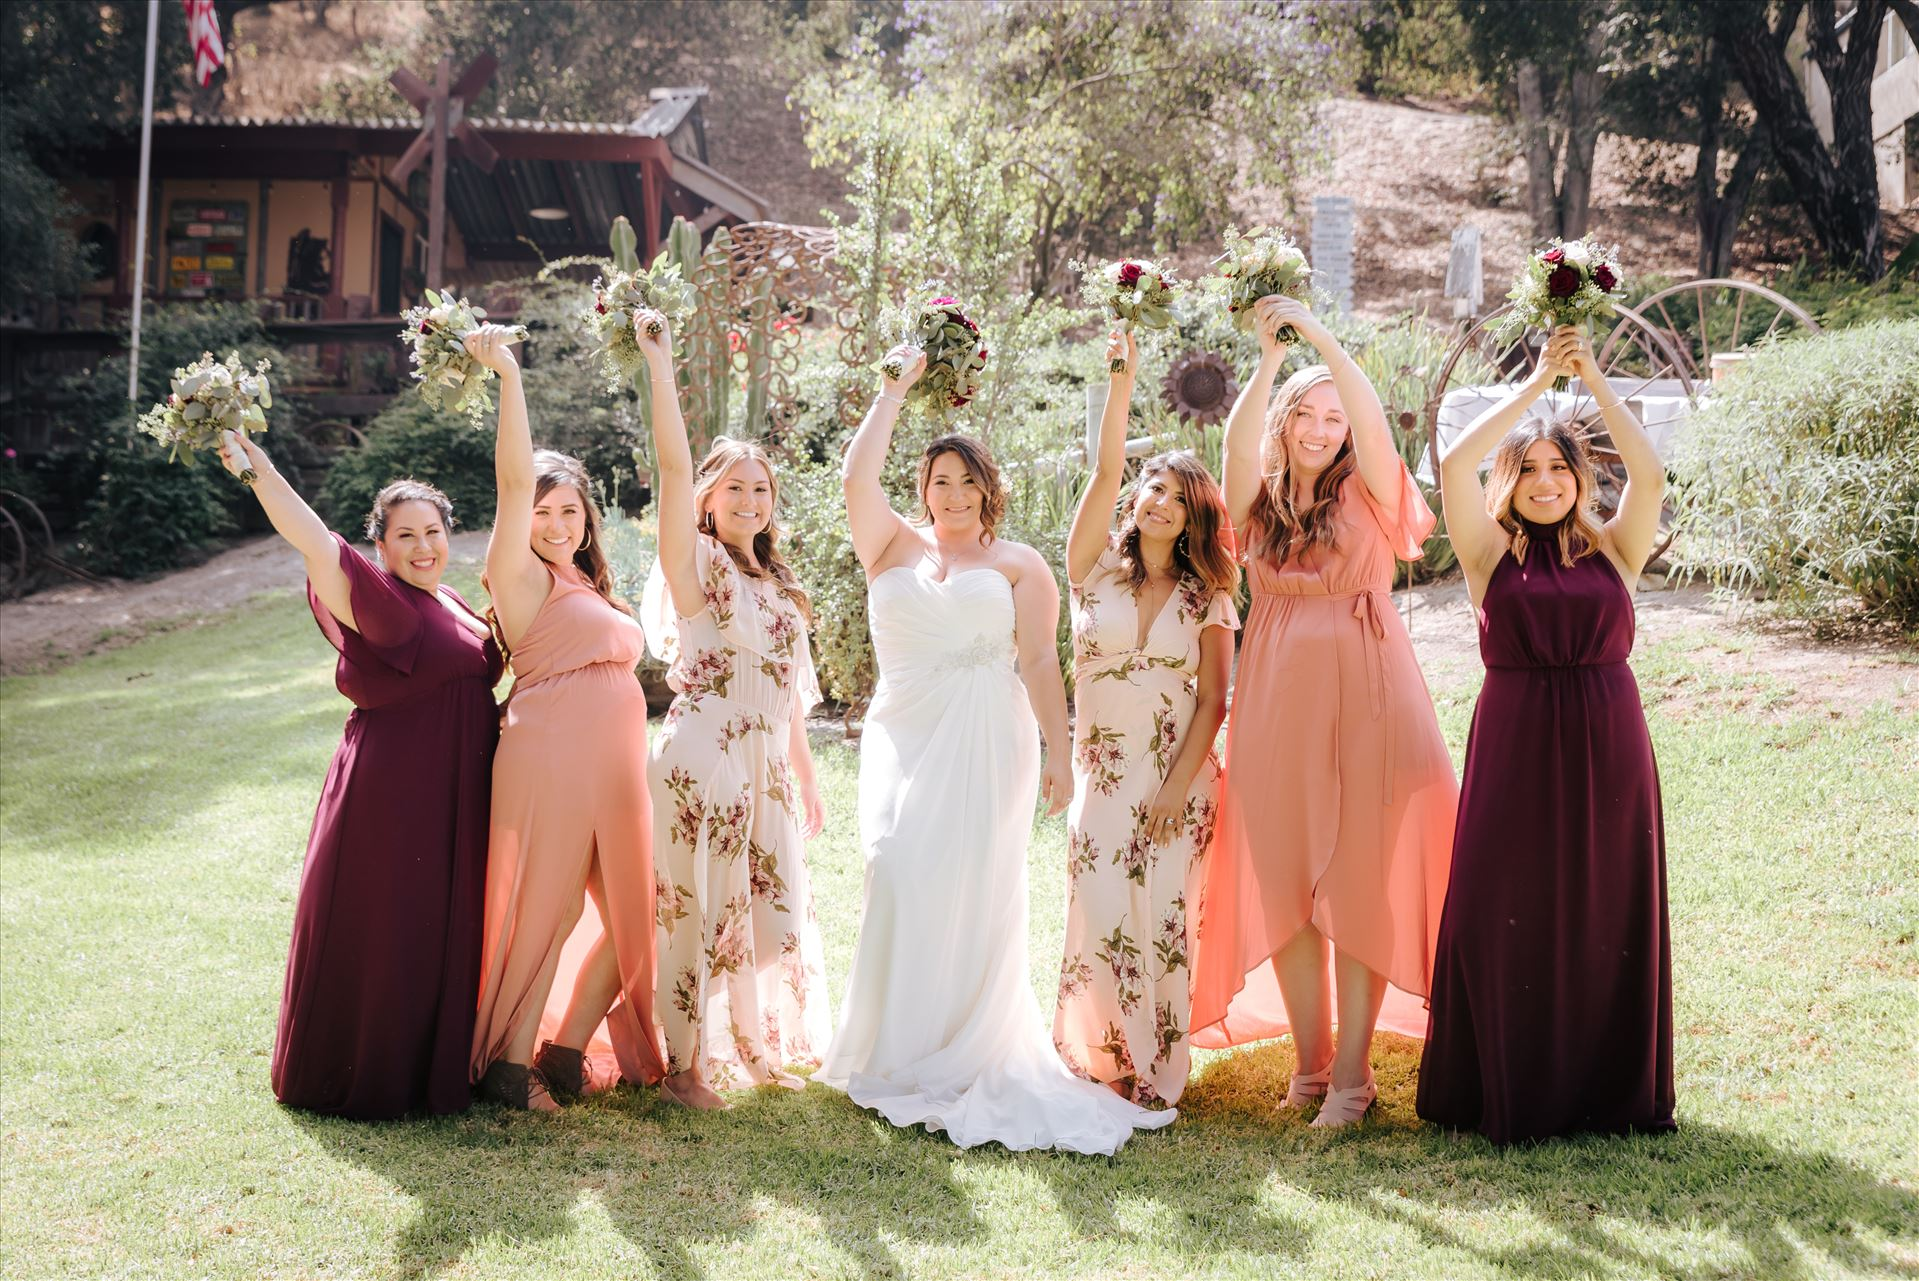 Madison and Stephen Wedding 054 - Mirror's Edge Photography captures Madison and Stephen's Wedding at Case de Alvarez in Arroyo Grande, California. Bride and Bridesmaids by Sarah Williams